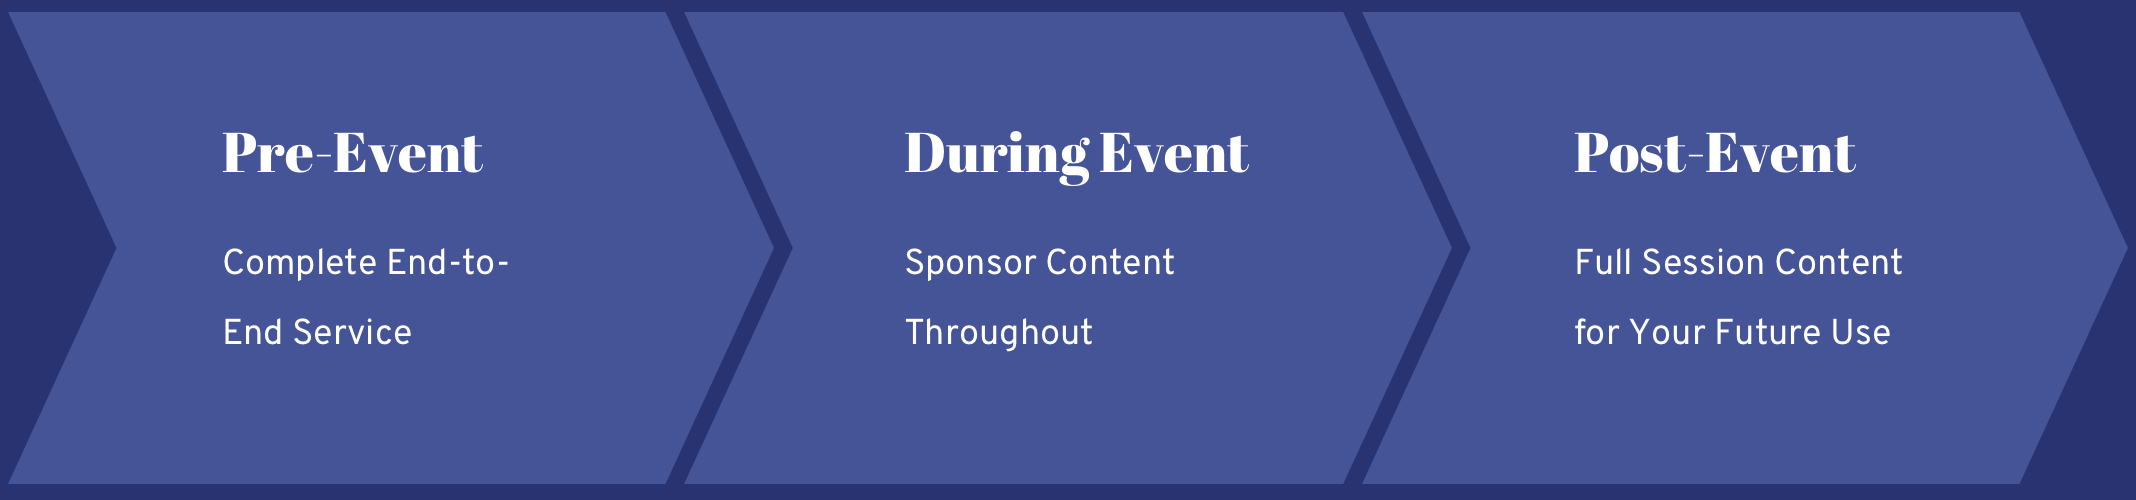 """Banner image with 3 arrows pointing to the right, reading, """"Pre-Event, Complete End-to-End Service,"""" """"During Event, Sponsor Content Throughout,"""" and """"Post Event, Full Session Content for Your Future Use."""""""